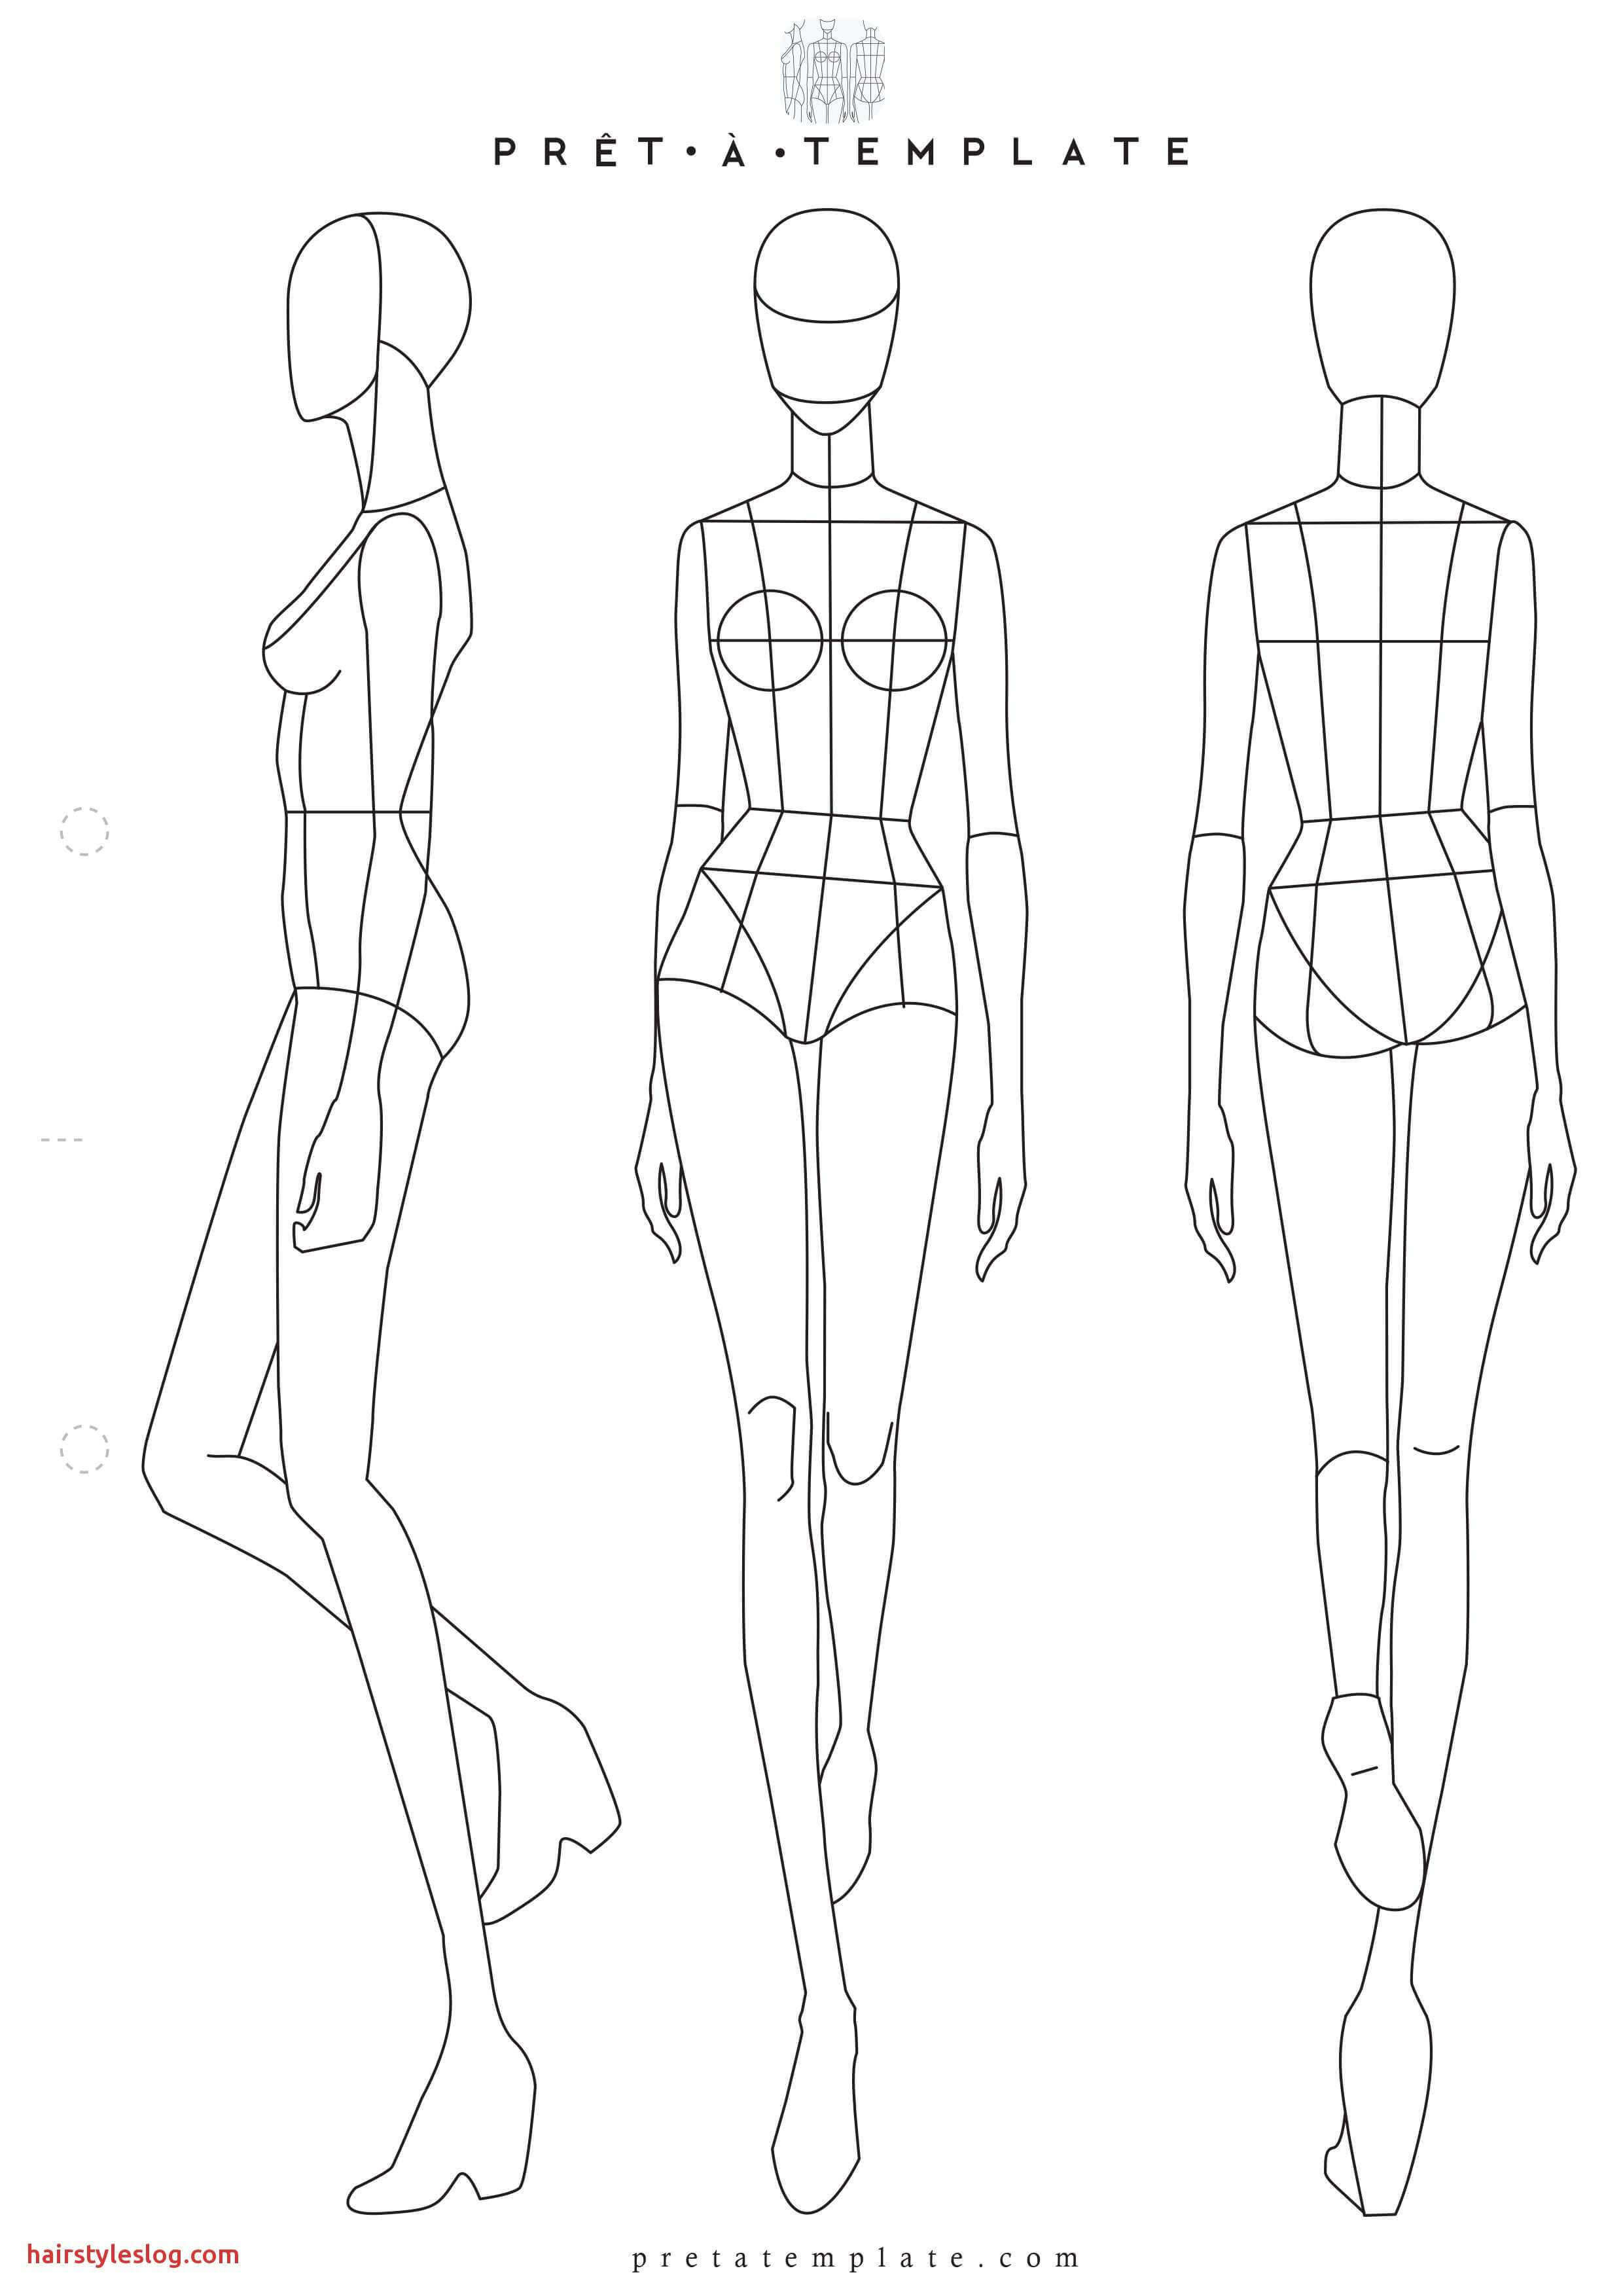 Model Sketch Template At Paintingvalley   Explore inside Blank Model Sketch Template